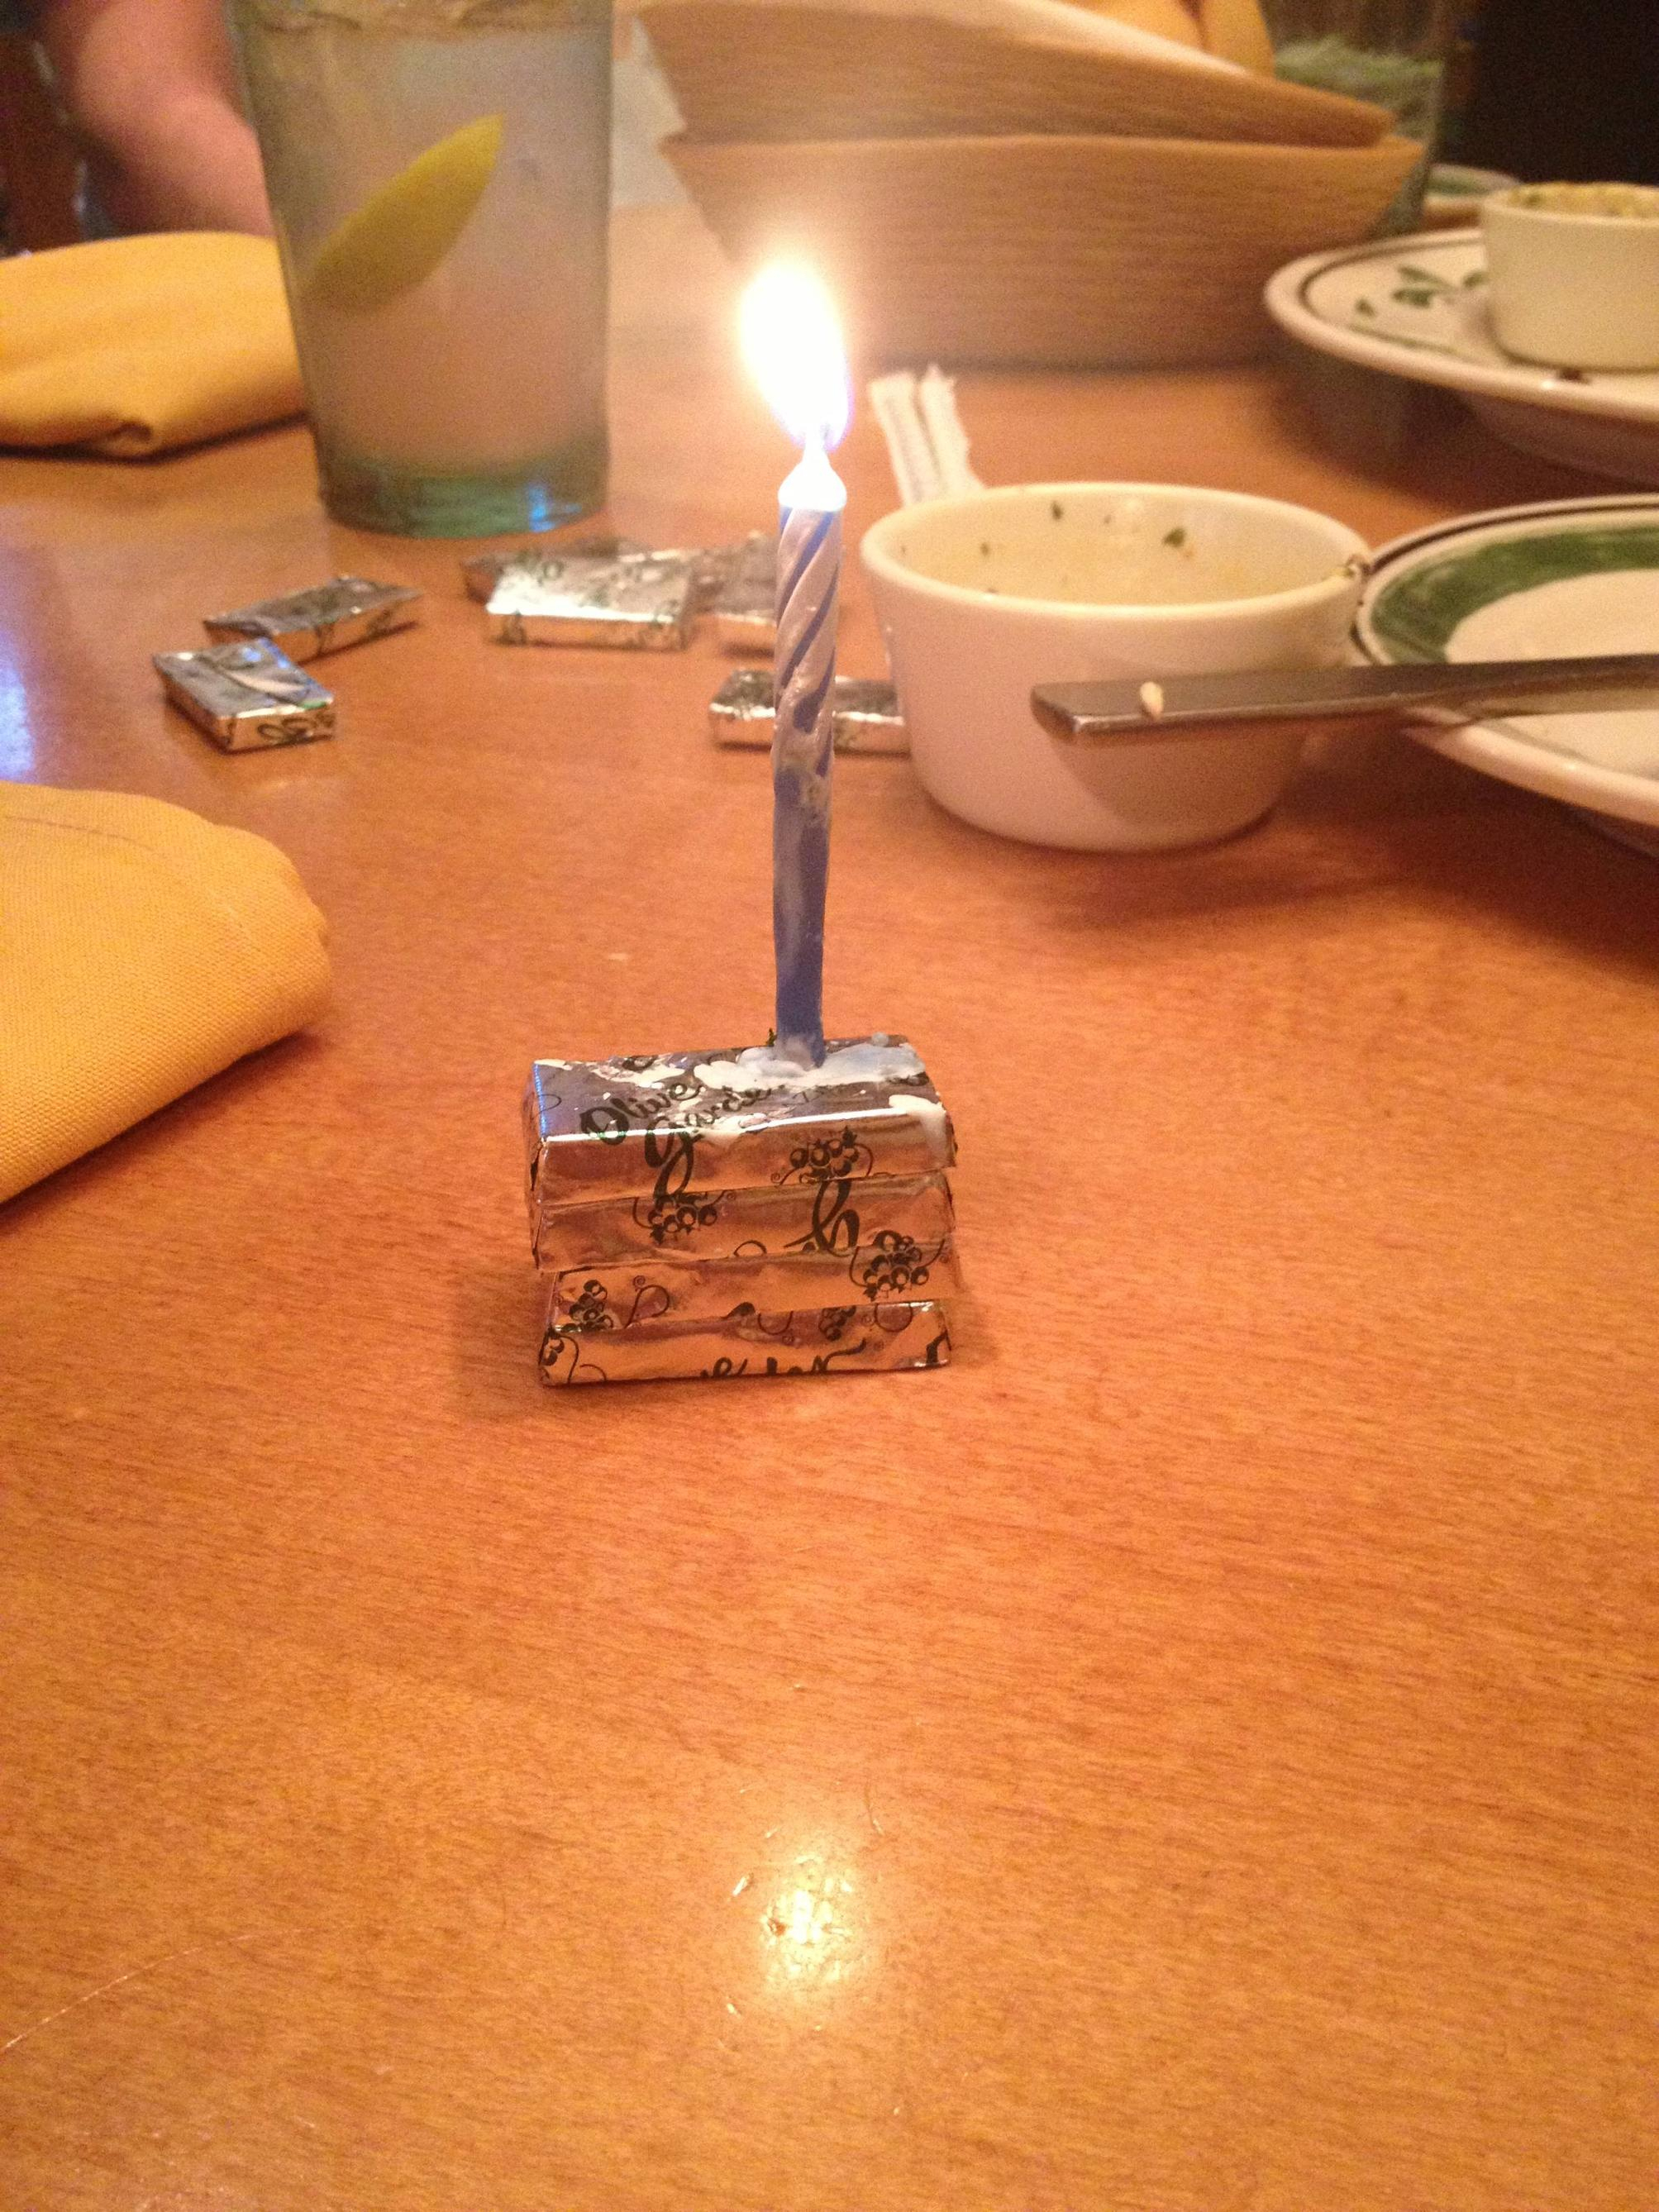 Olive Garden Birthday Cake So Olive Garden Apparently Ran Out Of Cake And Put A Candle In The